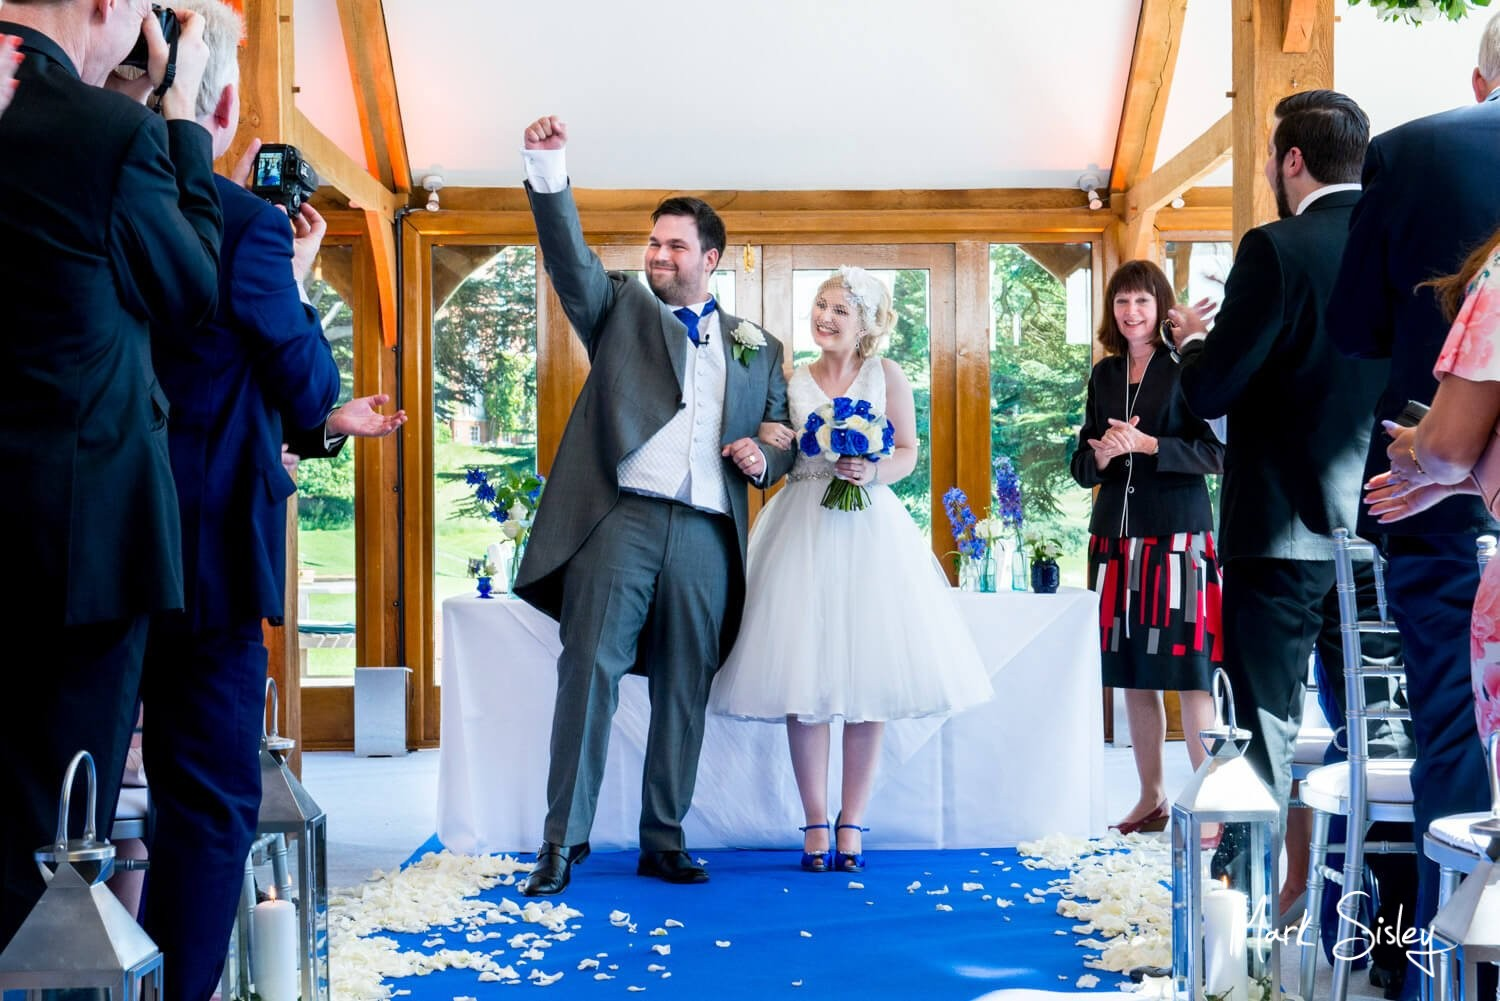 Brocket Hall wedding photography during the civil ceremony